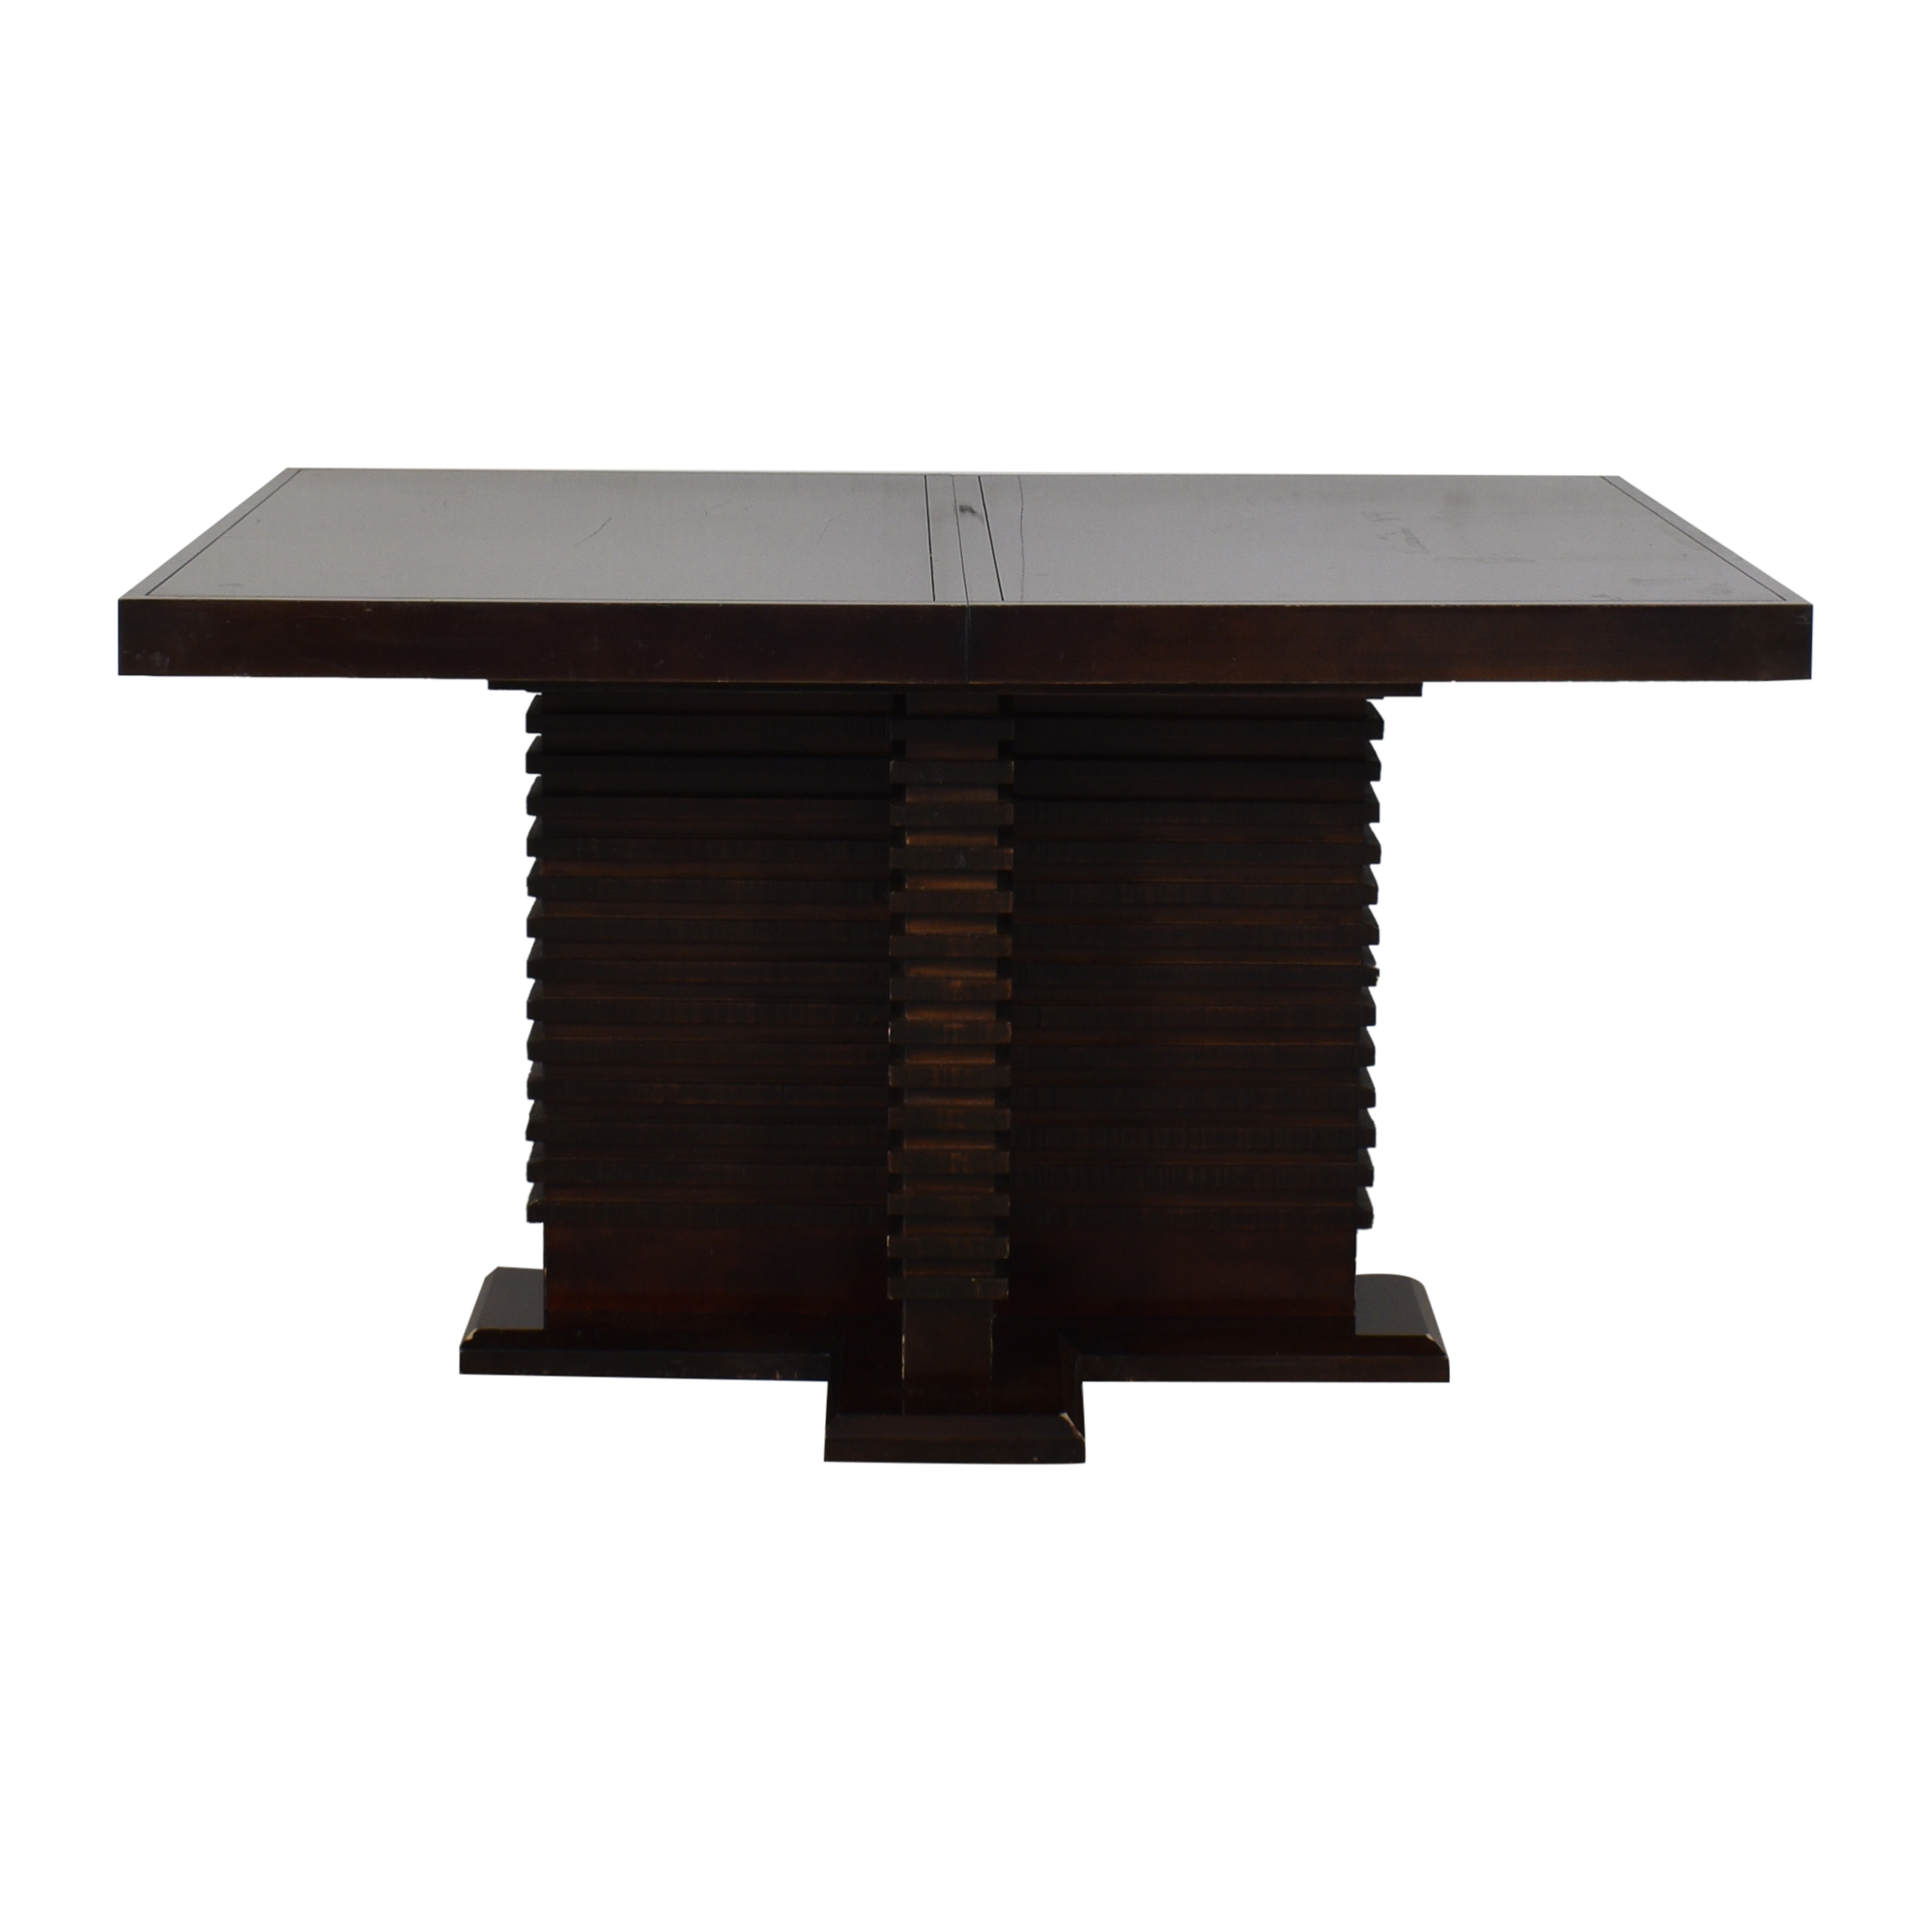 Legacy Classic Furniture Legacy Classic Furniture Rectangular Pedestal Table for sale